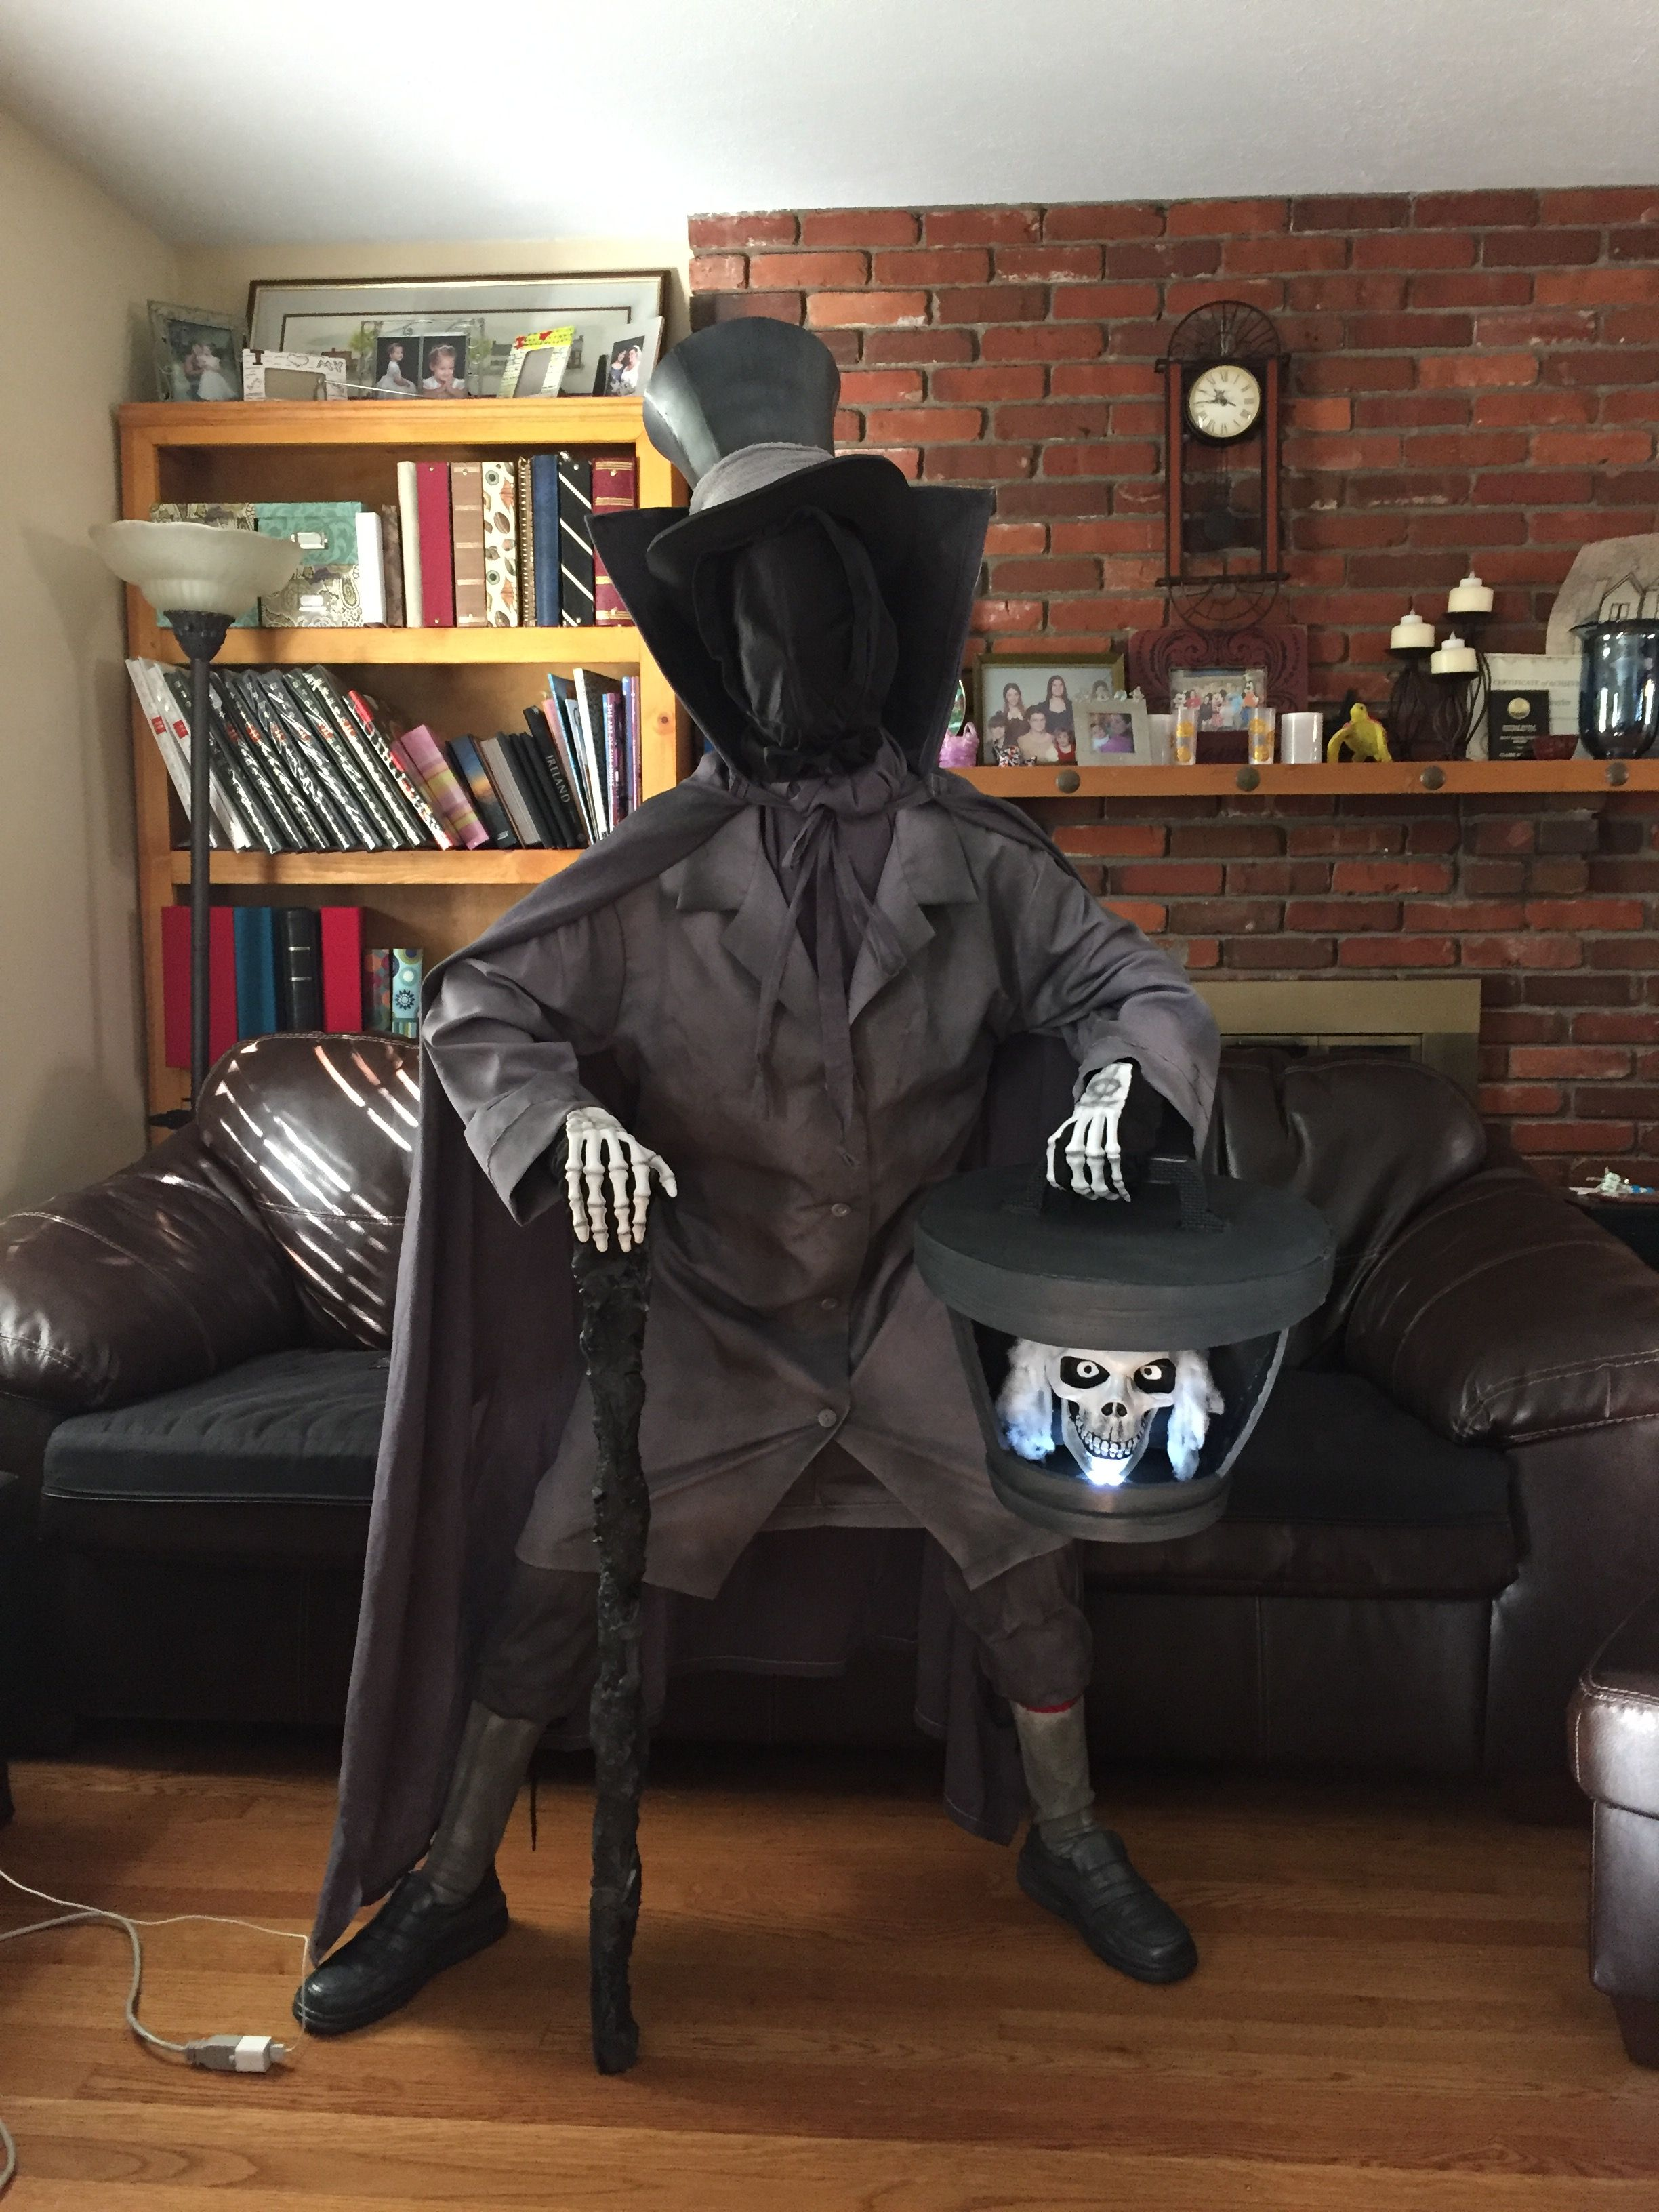 Diy Hatbox Ghost Costume I Made For My Son Hatbox Ghost Haunted Mansion Costume Ghost Costume